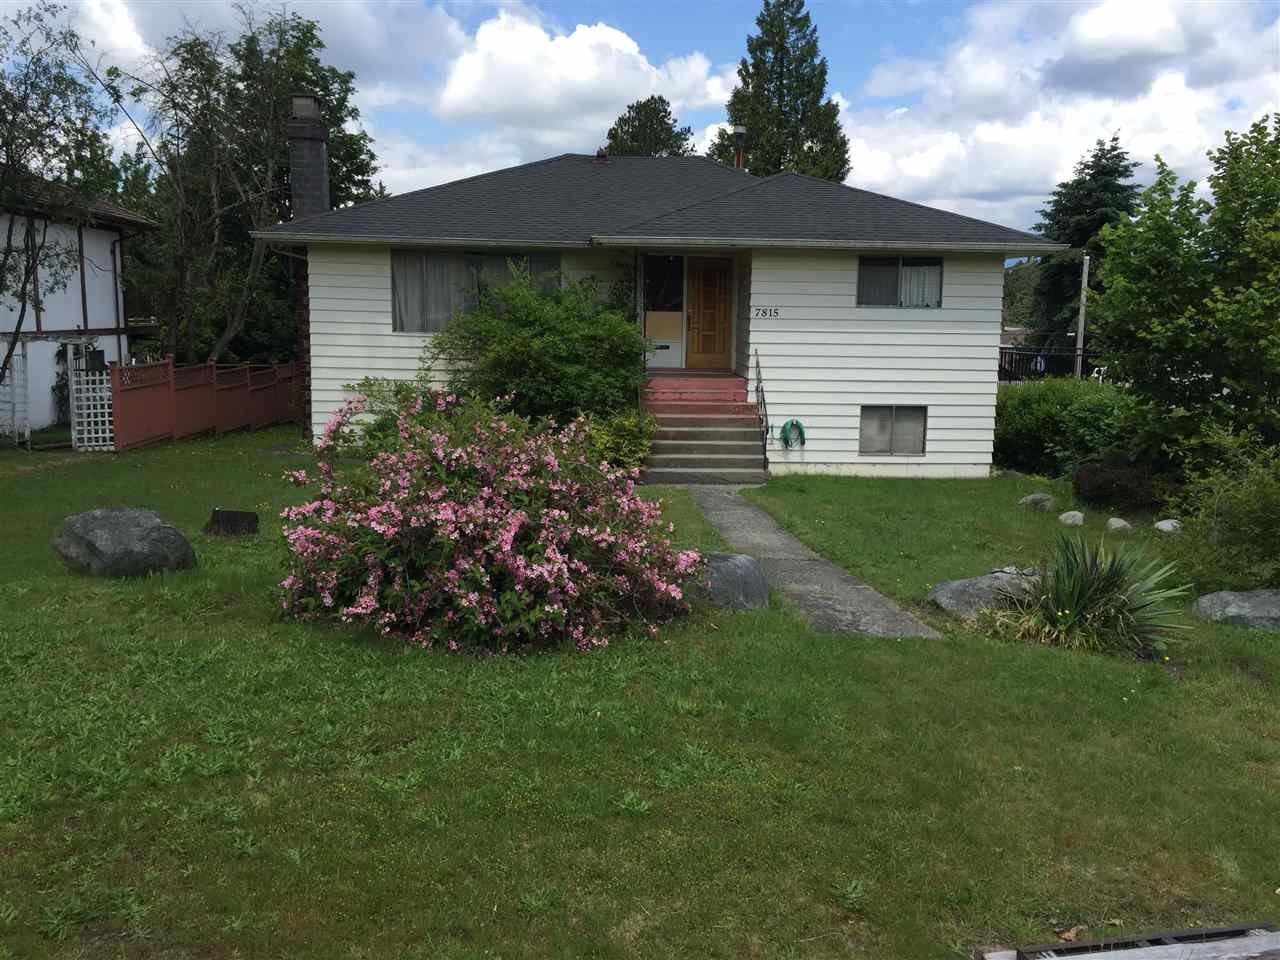 Main Photo: 7815 ALLMAN Street in Burnaby: Burnaby Lake House for sale (Burnaby South)  : MLS®# R2527413